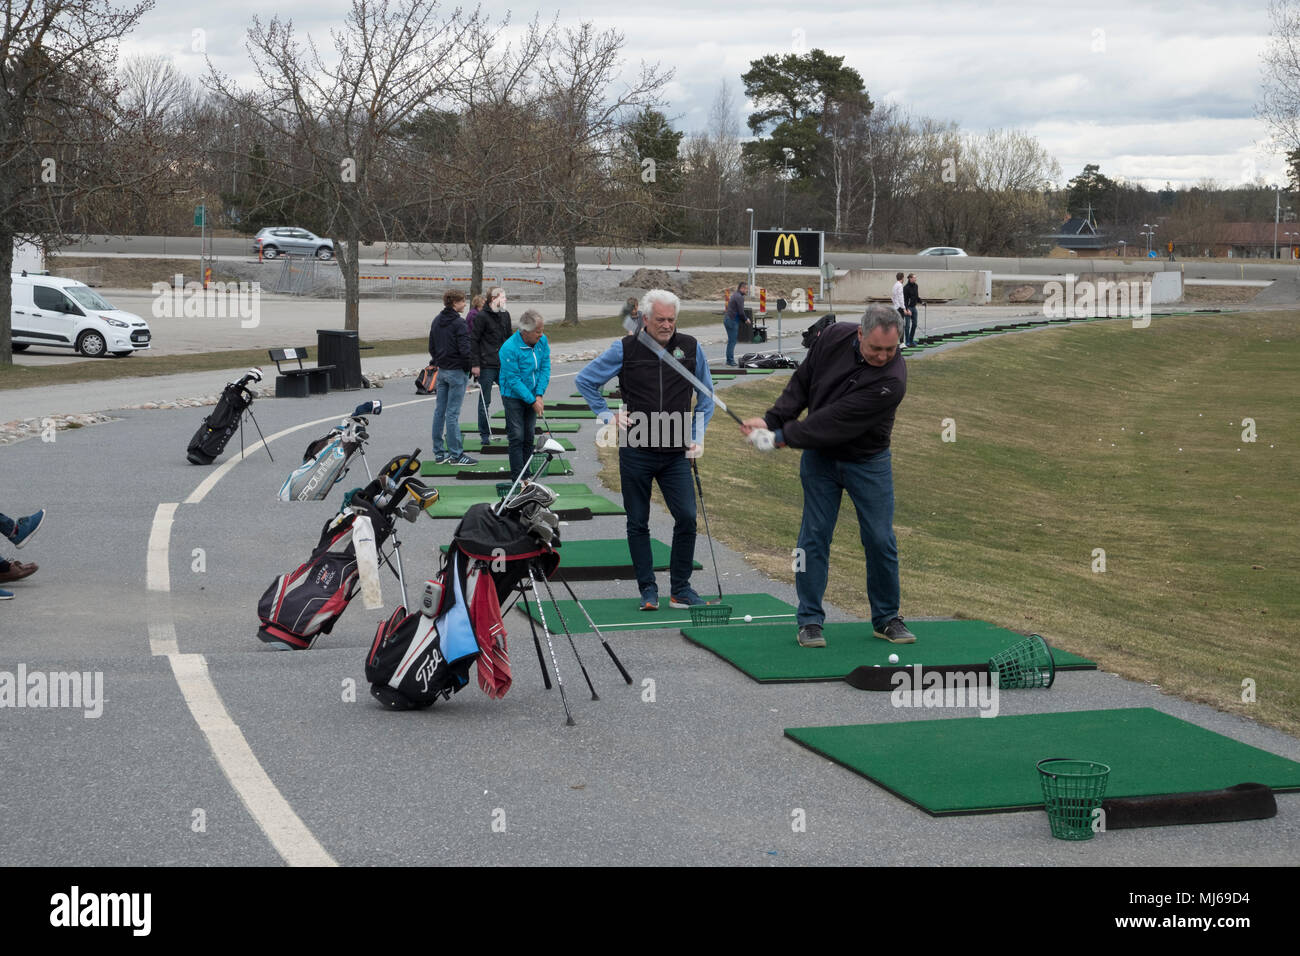 People train on the driving range in front of the golf course, Sollentuna, Sweden. - Stock Image